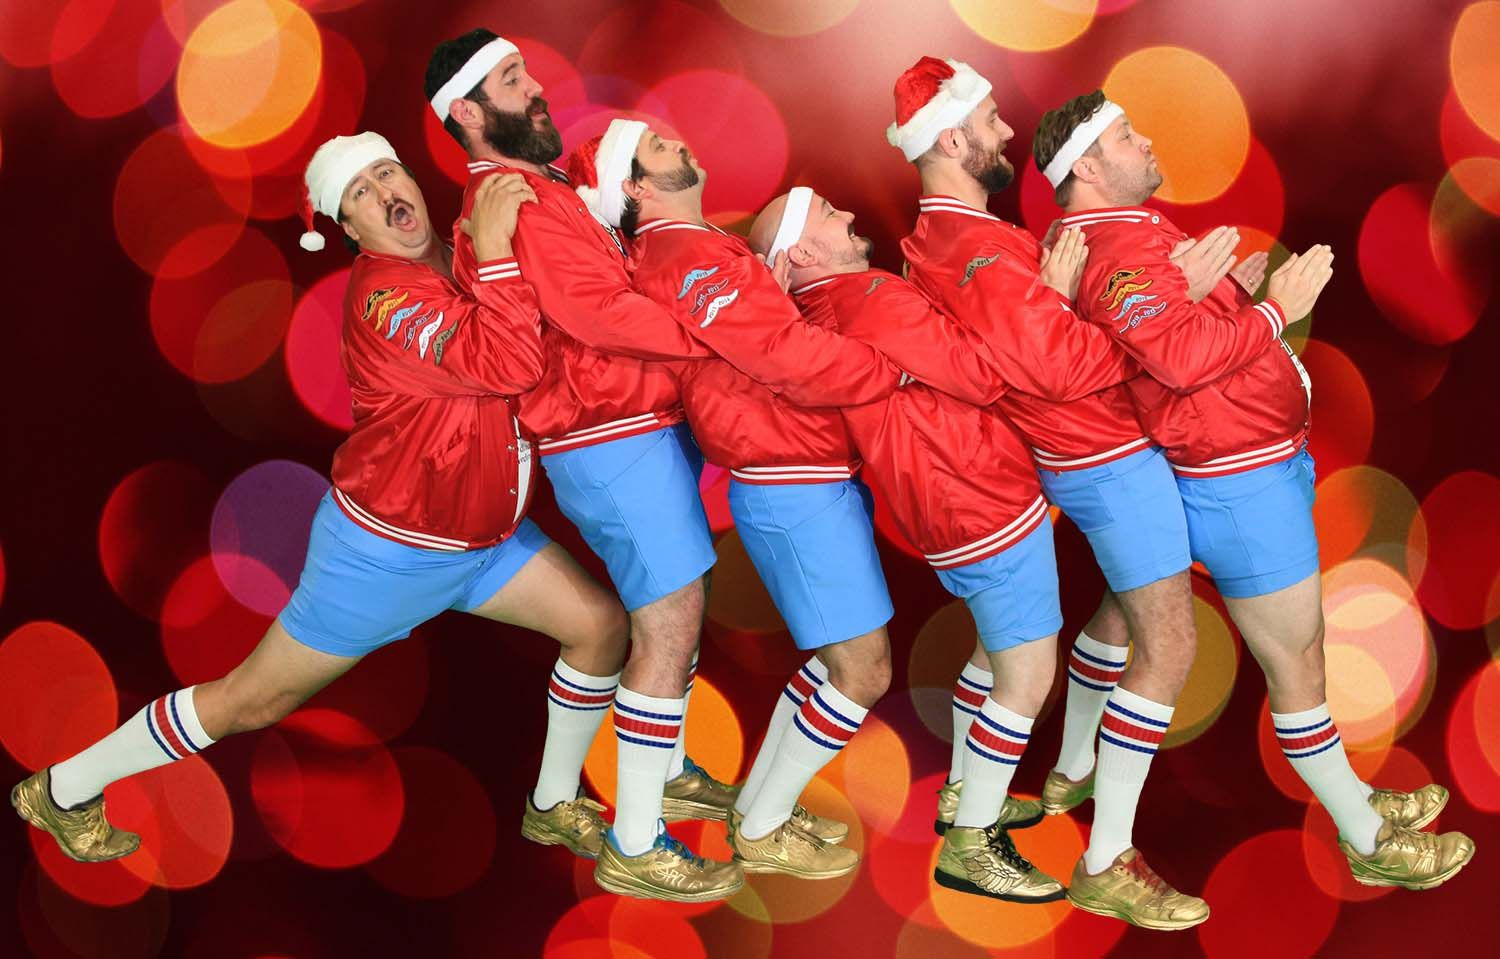 See the LPO Holiday Spectacular with the 610 Stompers at the Orpheum Theater in Downtown New Orleans on December 9 at 7:30 PM. Tickets available now!